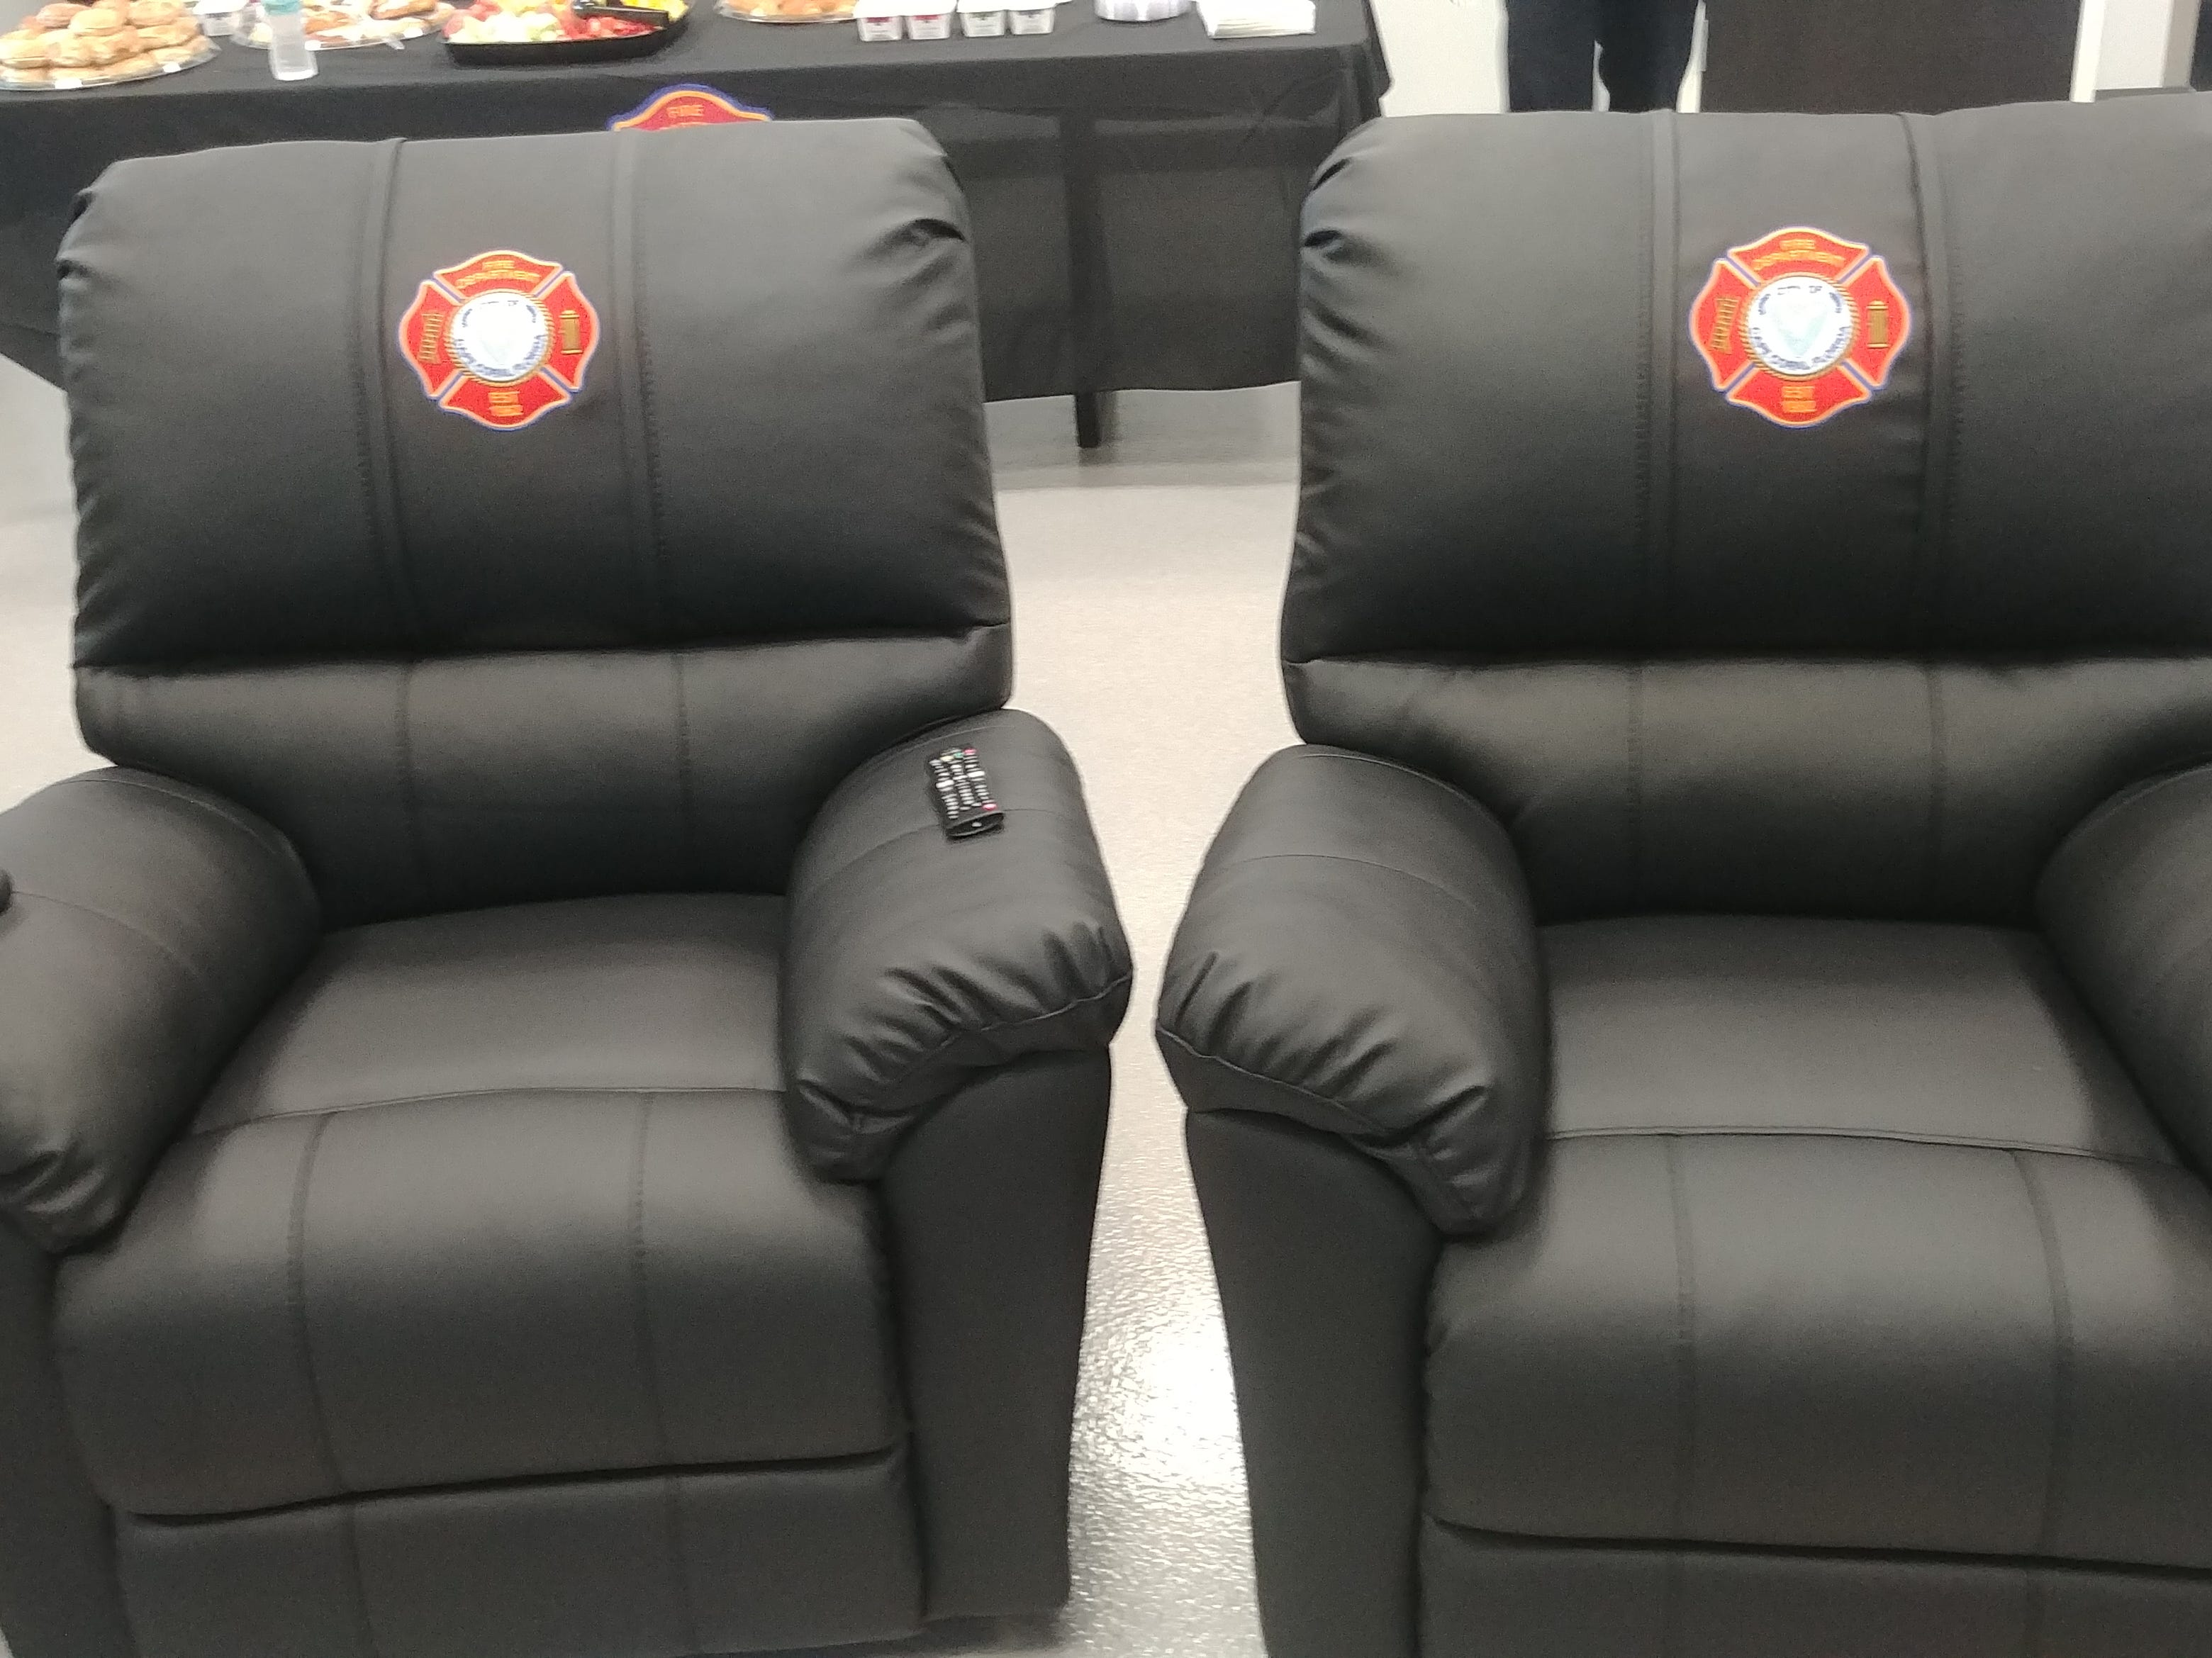 Firefighters will relax in custom recliners while waiting the next emergency call at the new Station 11 on Burnt Store Road in Cape Coral.